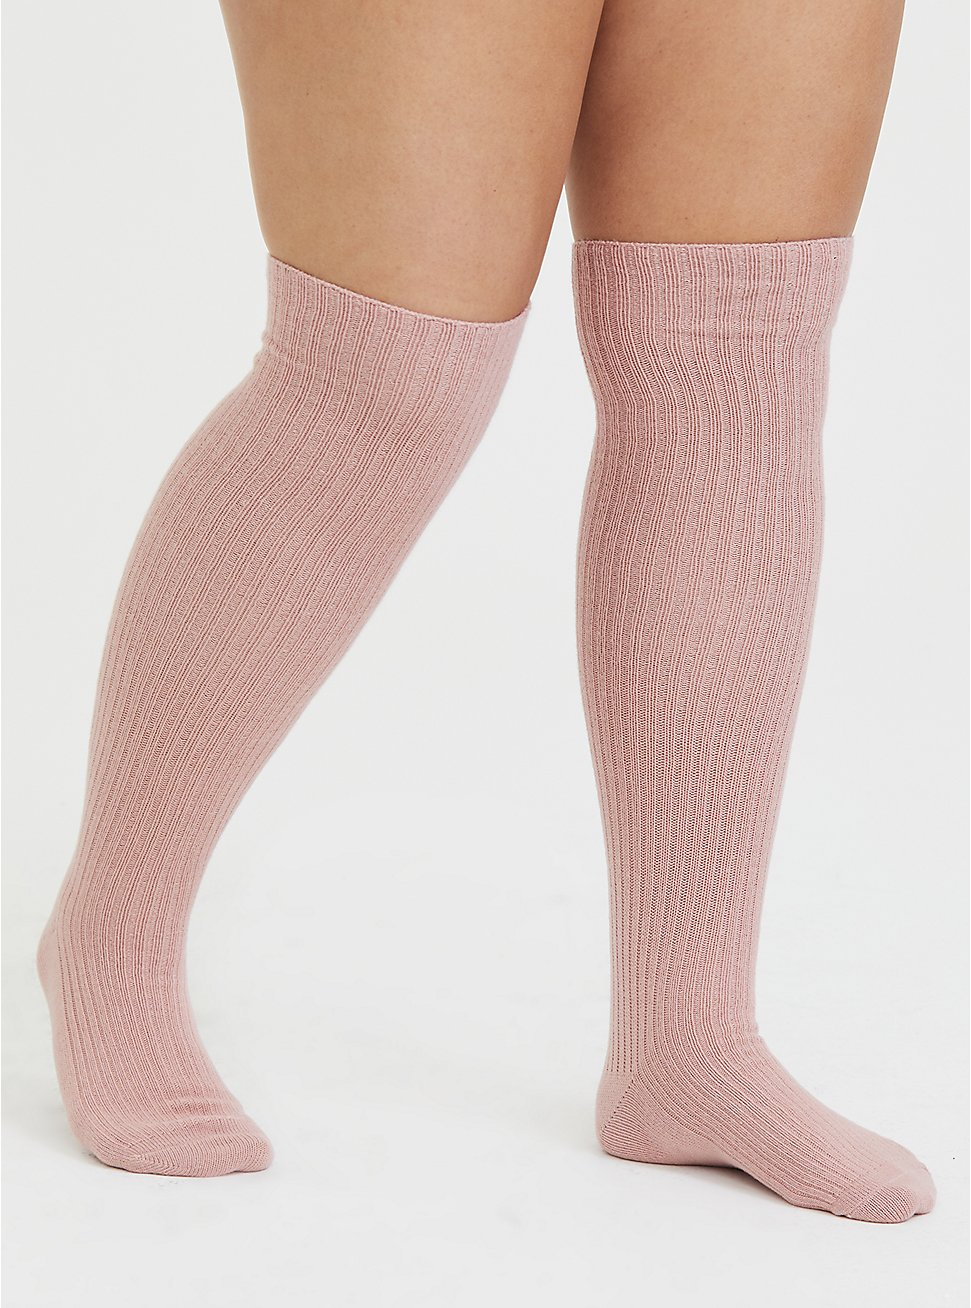 Dusty Pink & White Over-The-Knee Sock Pack - Pack of 2, MULTI, hi-res